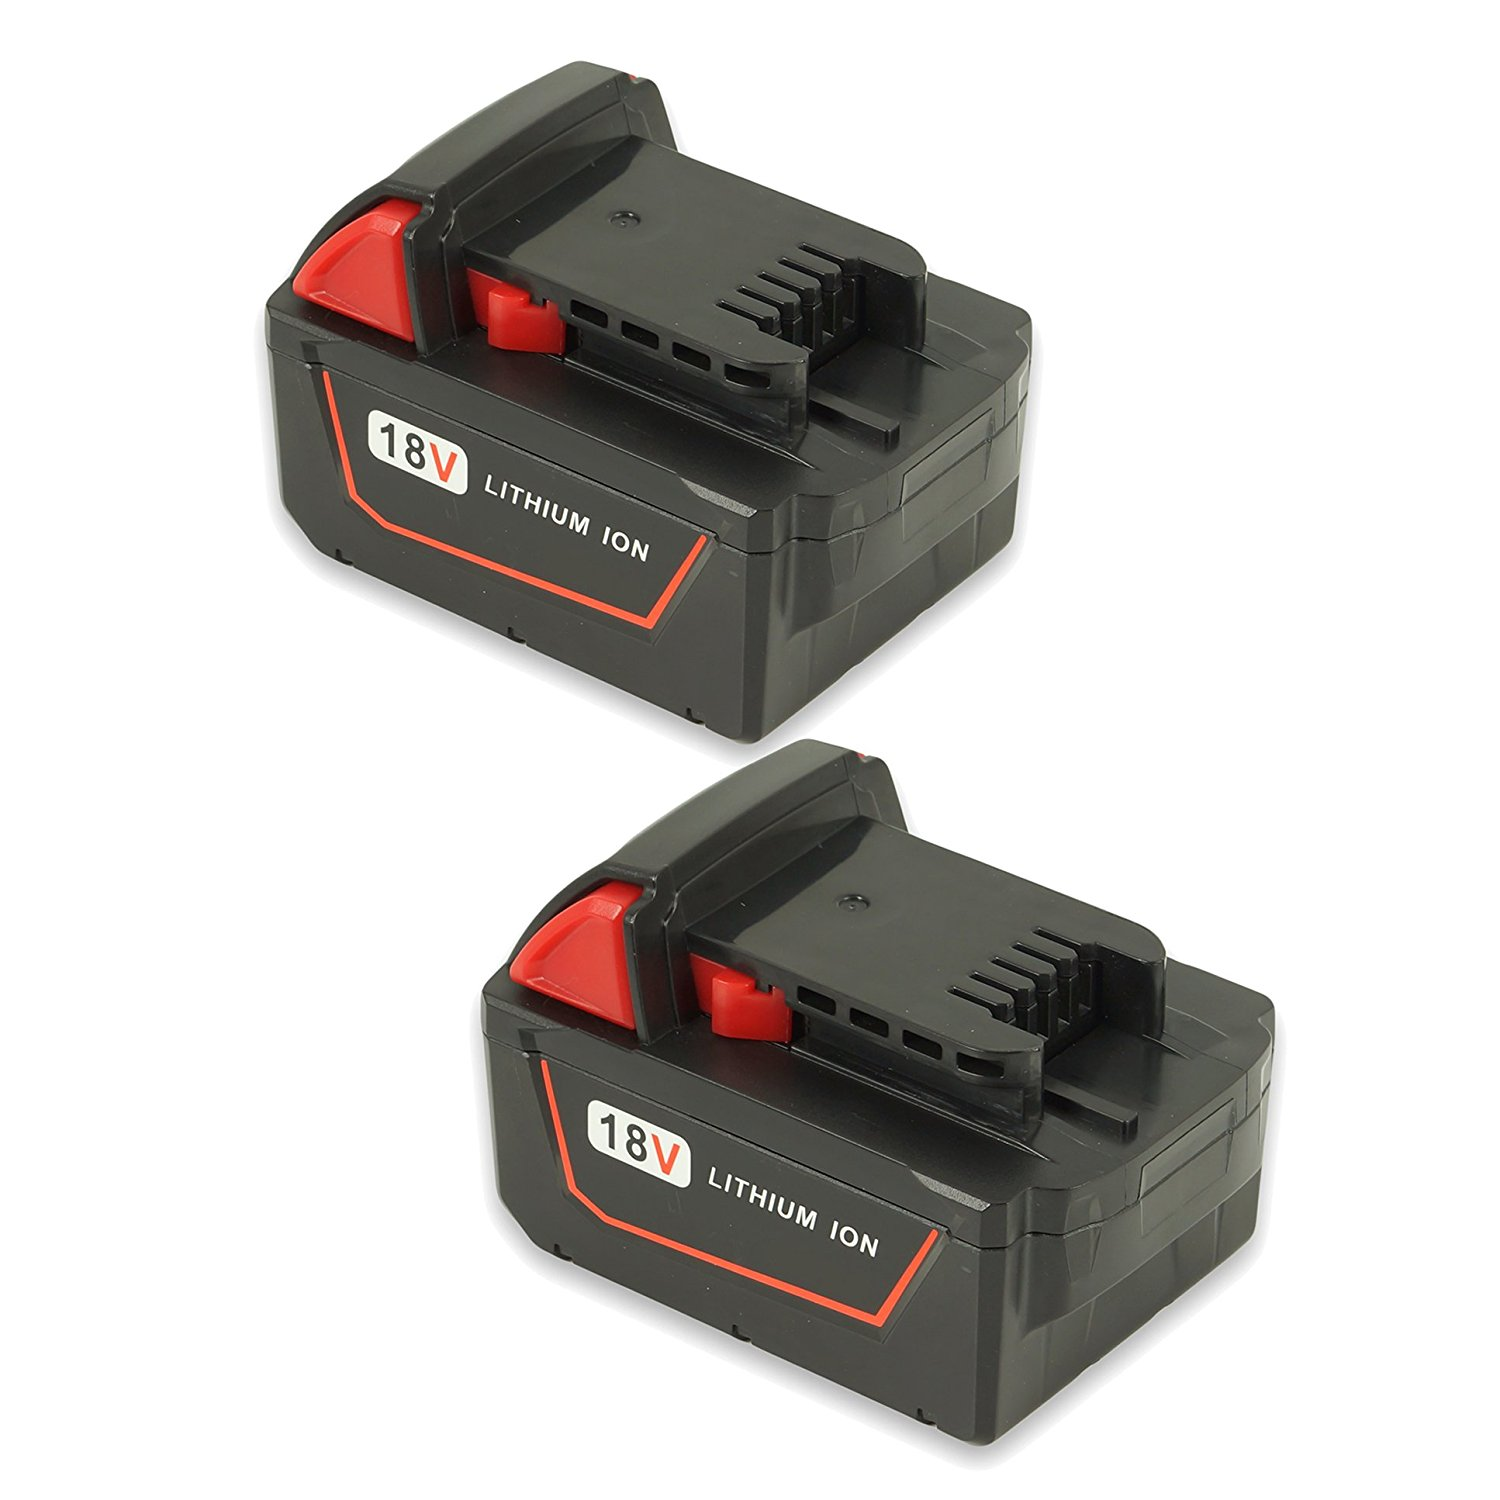 Replacement M18 18 Volt 4.0Ah Lithium XC Battery for Milwaukee 48-11-1820 C18B Li18 M18 M18B M18B2 M18B4 M18BX 4932352071 4932430063 Cordless Power Tools 2 Pack